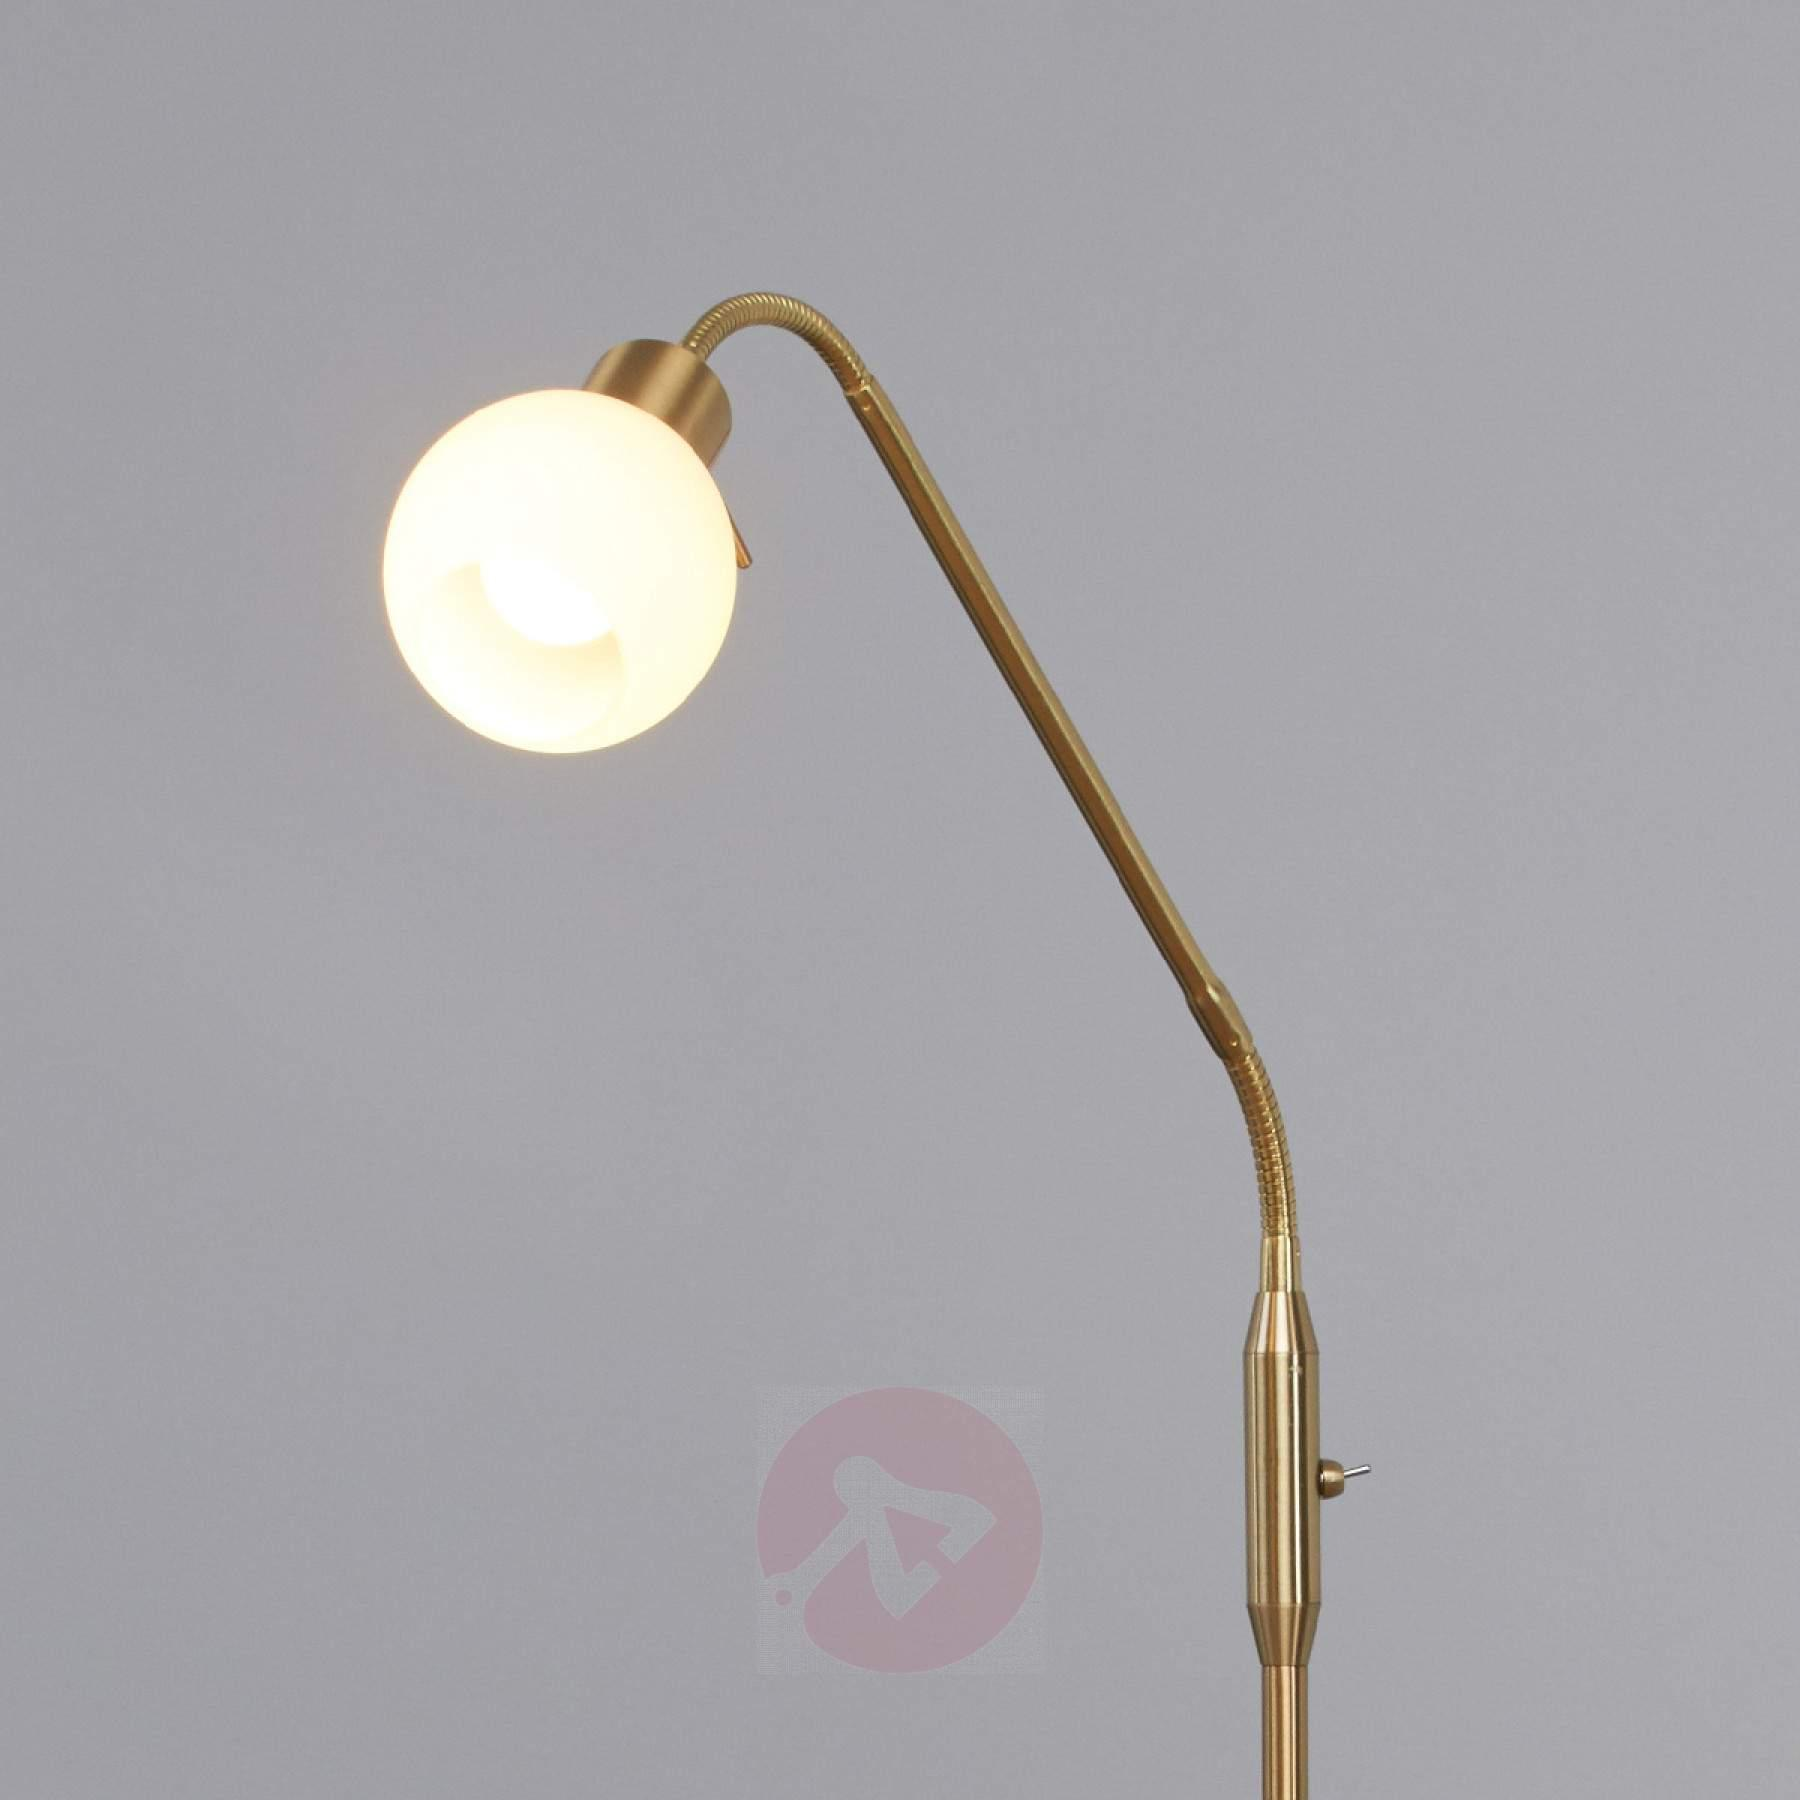 Stehlampe Messing Vintage